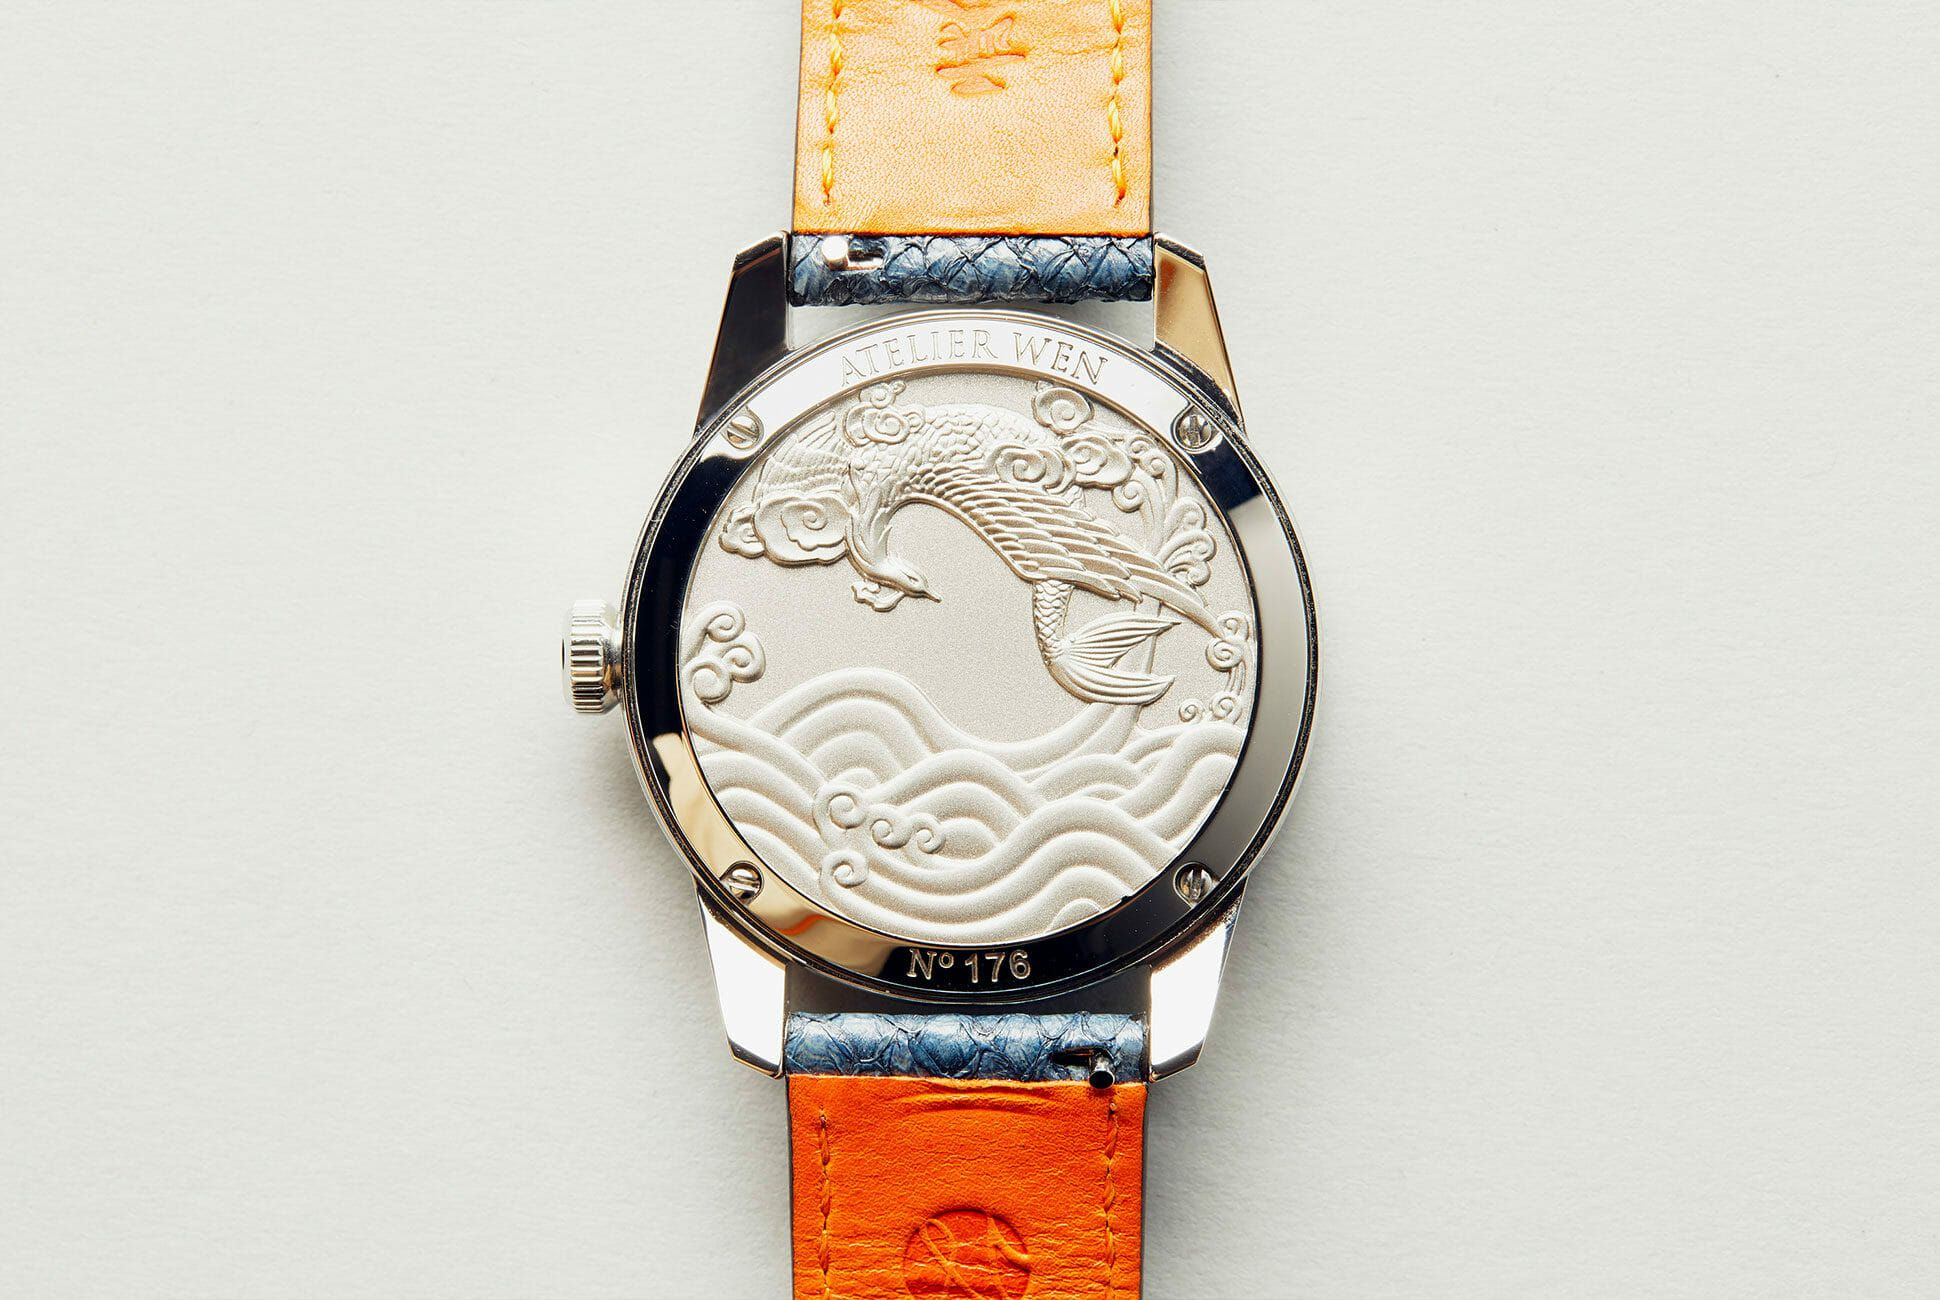 This-Affordable-Automatic-Watch-Has-One-of-the-Most-Stunning-Dials-Weve-Seen-Gear-Patrol-slide-4